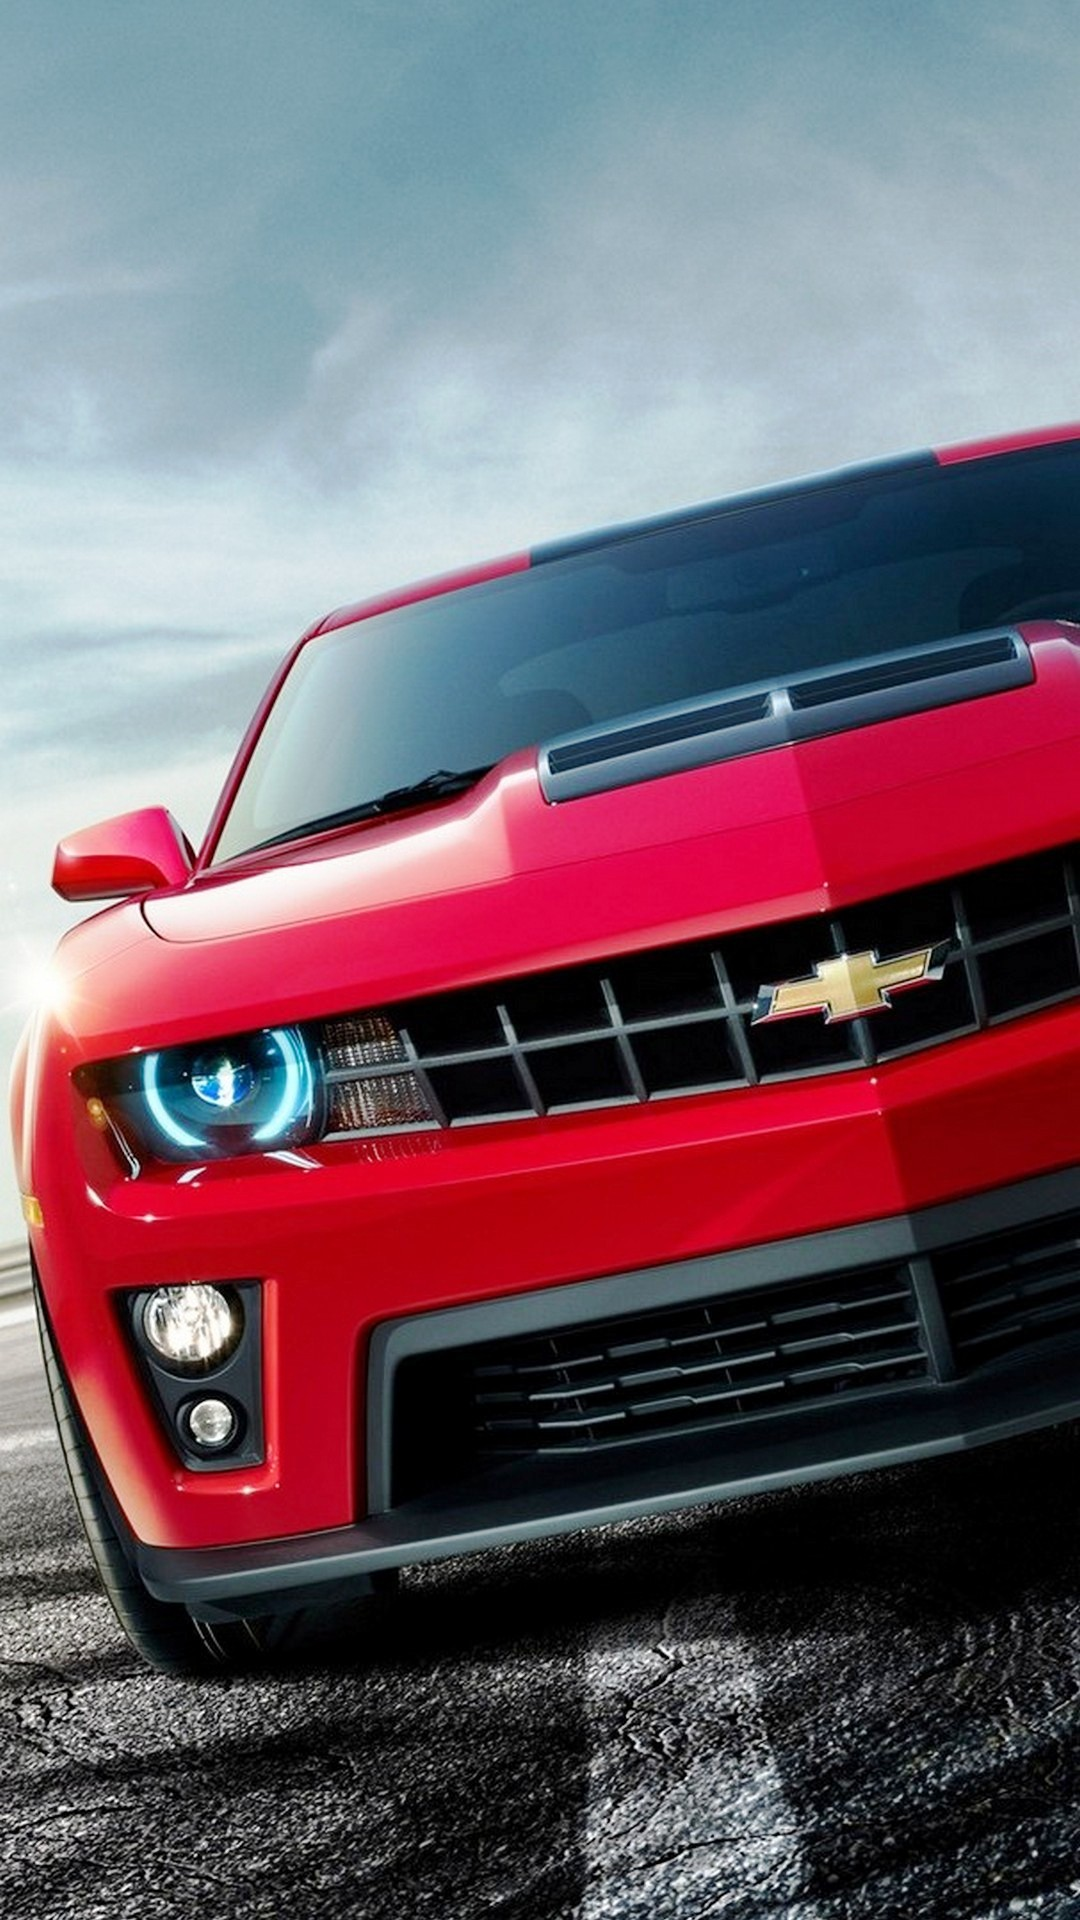 Car Wallpaper For Android With High Resolution Pixel Chevrolet Camaro Zl1 1080x1920 Download Hd Wallpaper Wallpapertip